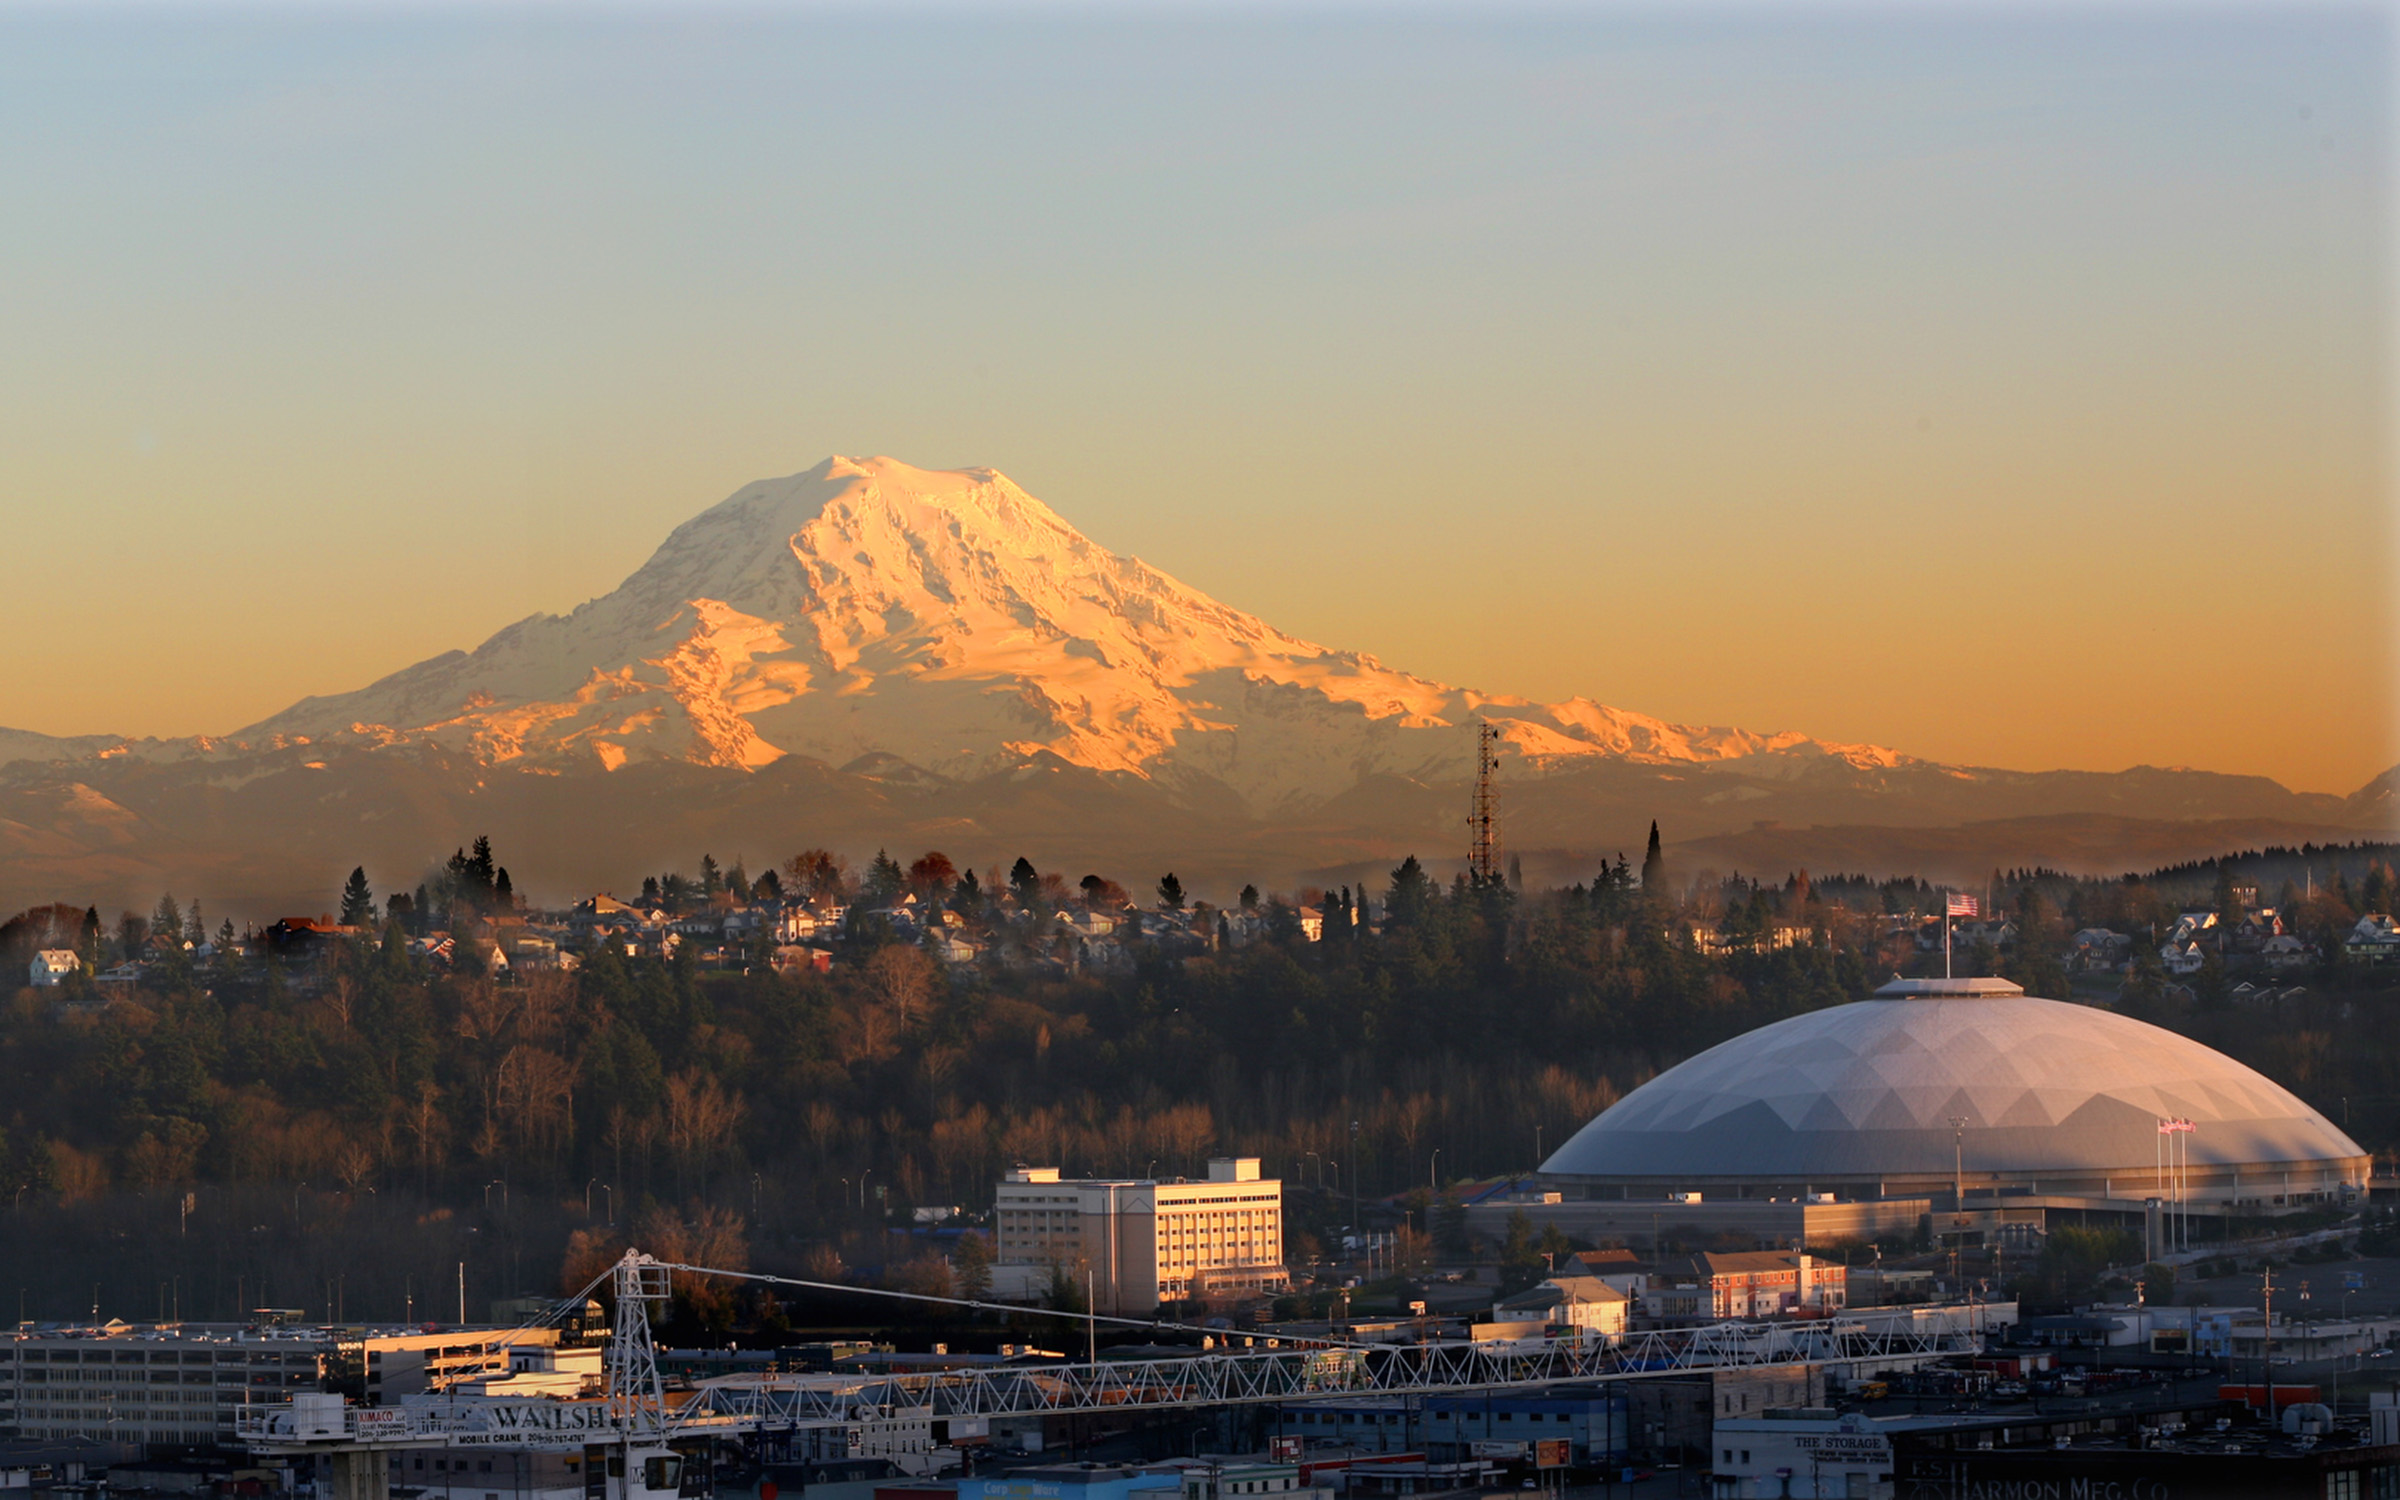 UW Tacoma's view of Rainier